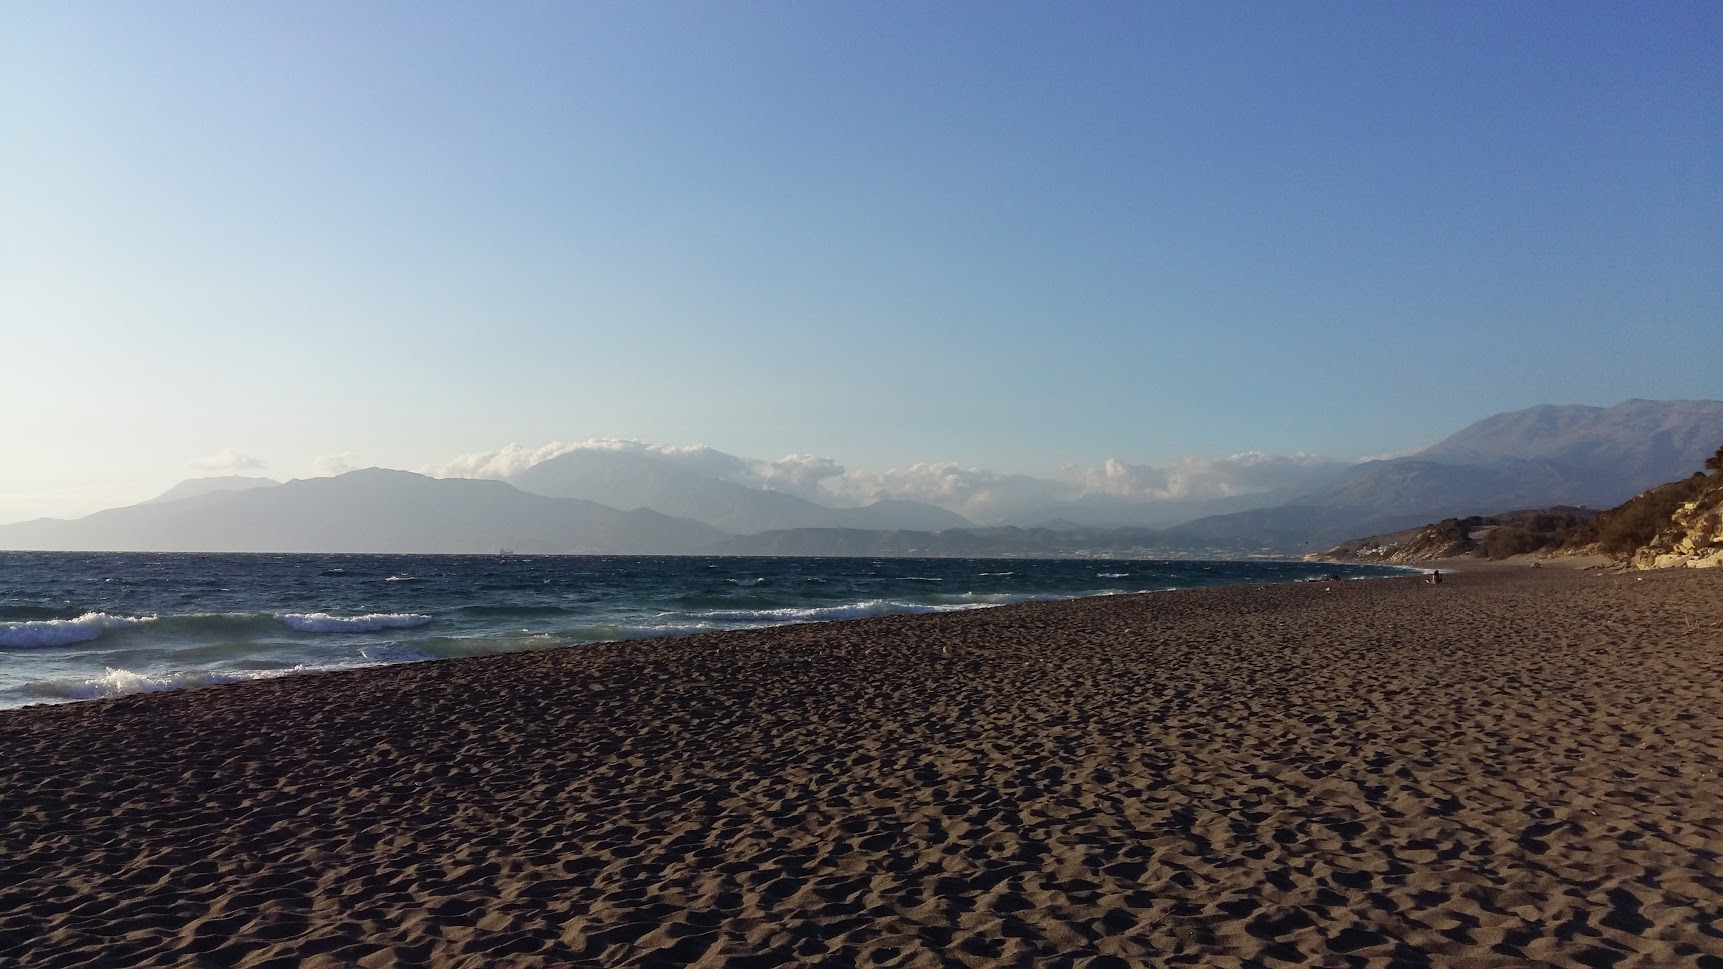 Triopetra is one our favourite beaches in Greece